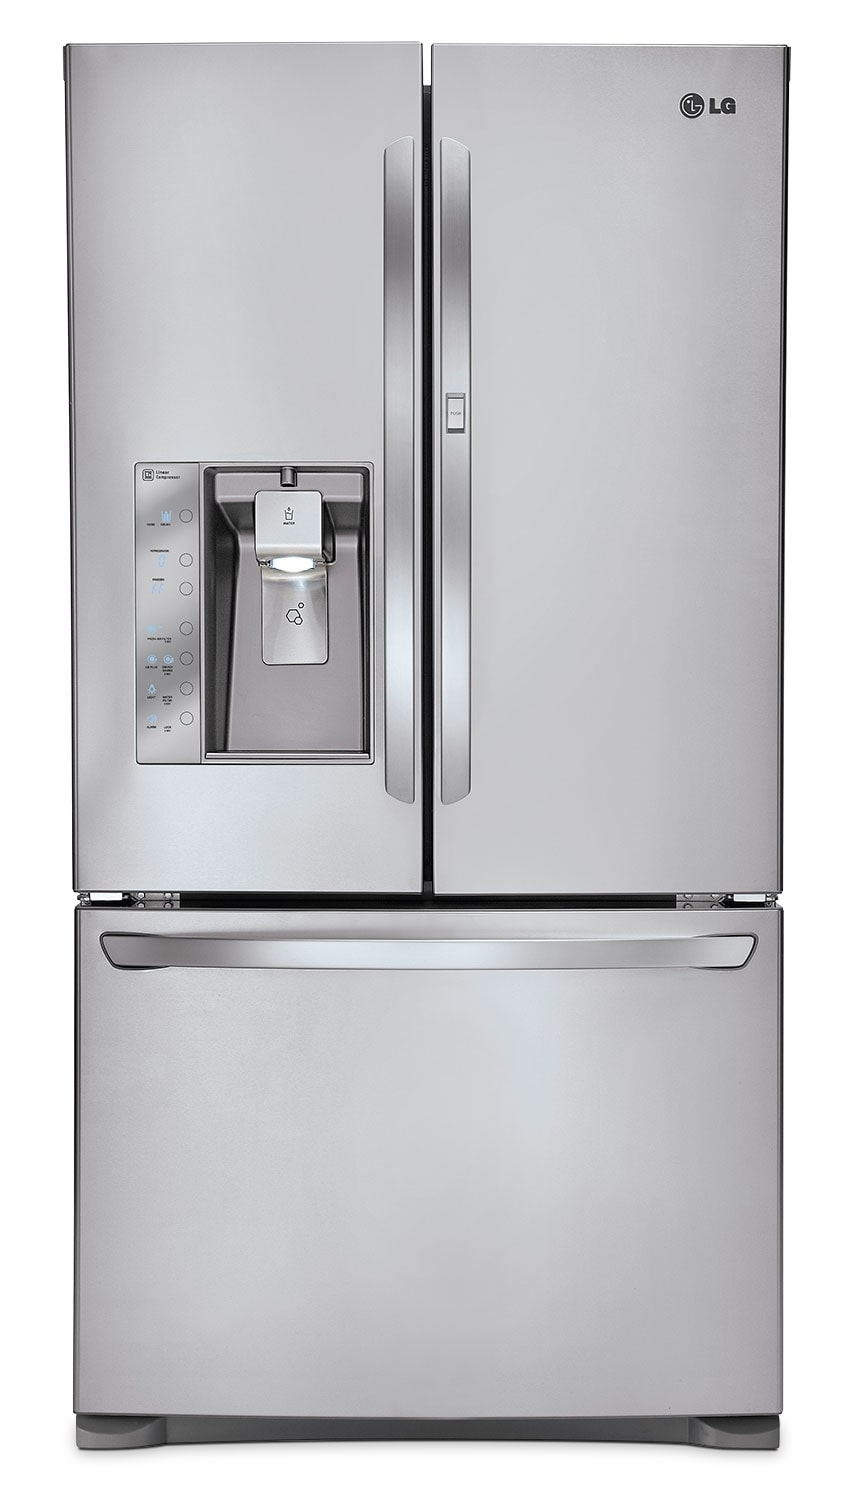 LG Appliances Stainless Steel French Door Refrigerator (23.8 Cu. Ft.) - LFXC24766S